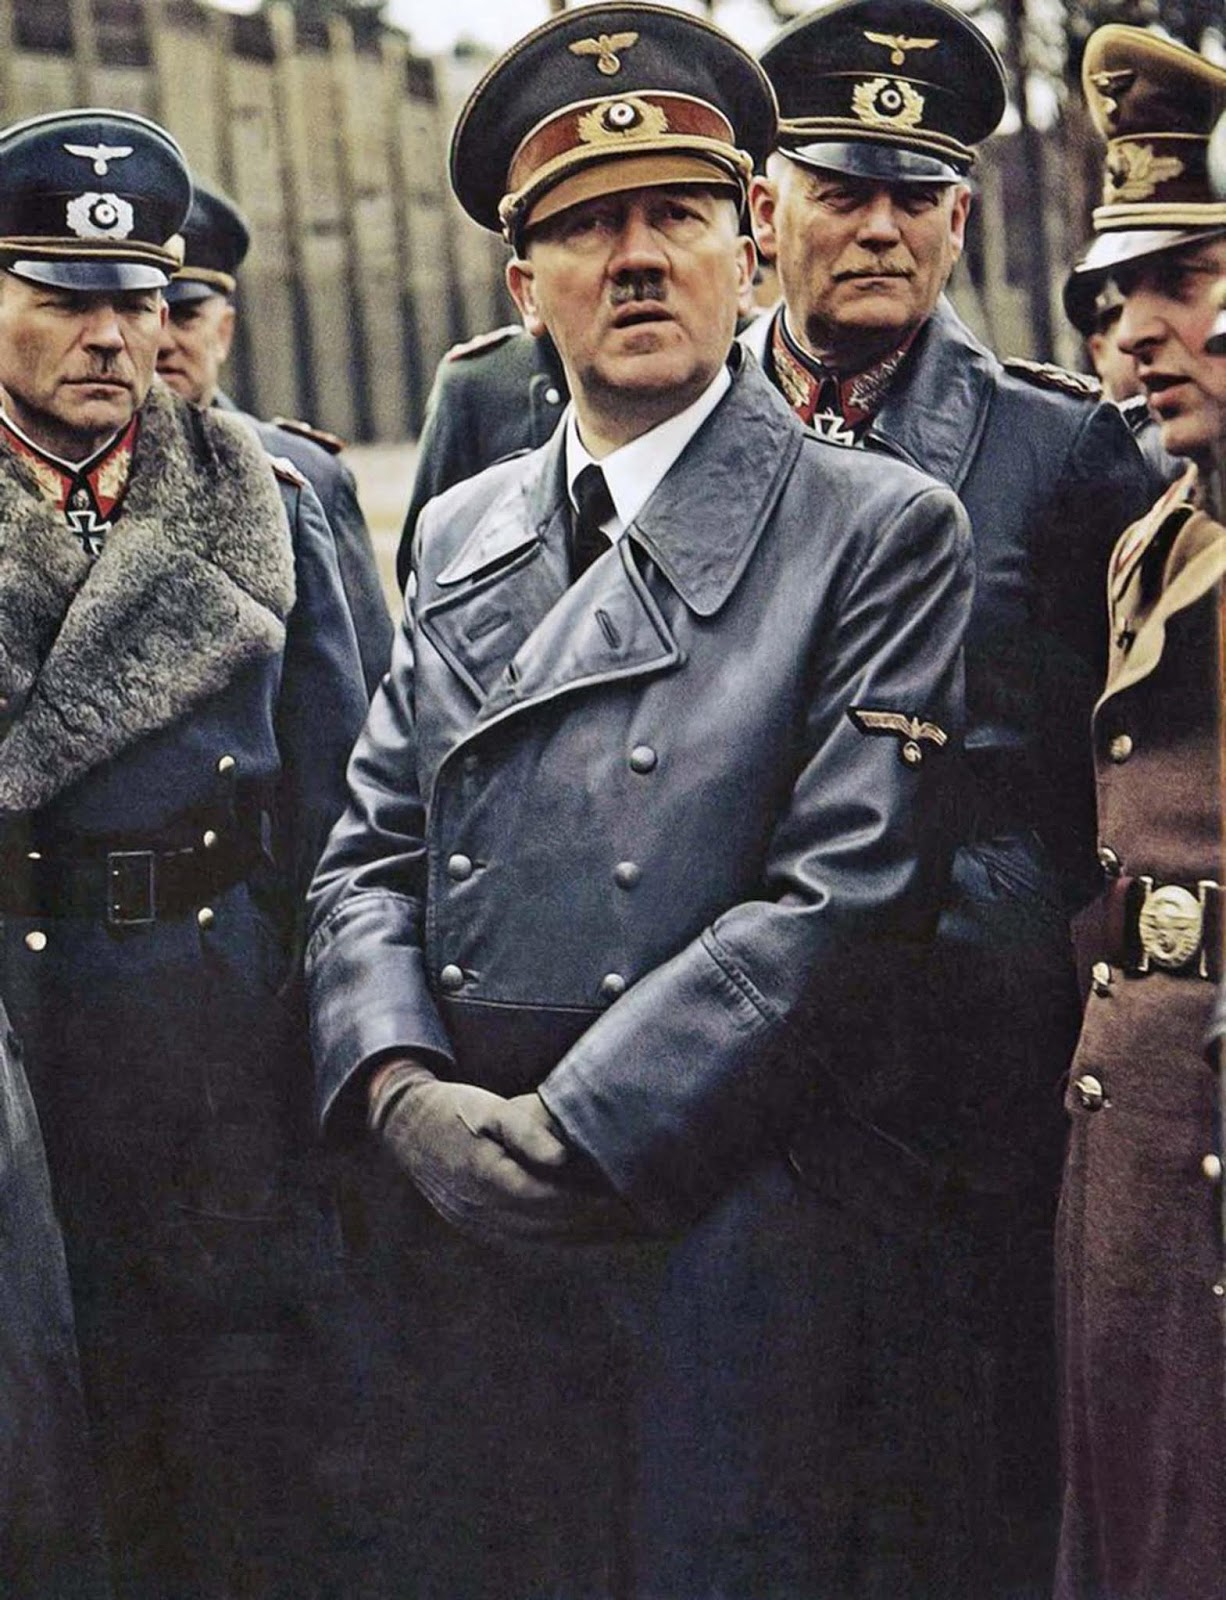 I know the center of attention here is Hitler - which is how he liked it (and probably why he dated a photographer, by the way). But the one who stands out in this shot is Heinz Guderian on the left. You have got to be a real badass to get away with that pimp collar in the middle of a bunch of killers.